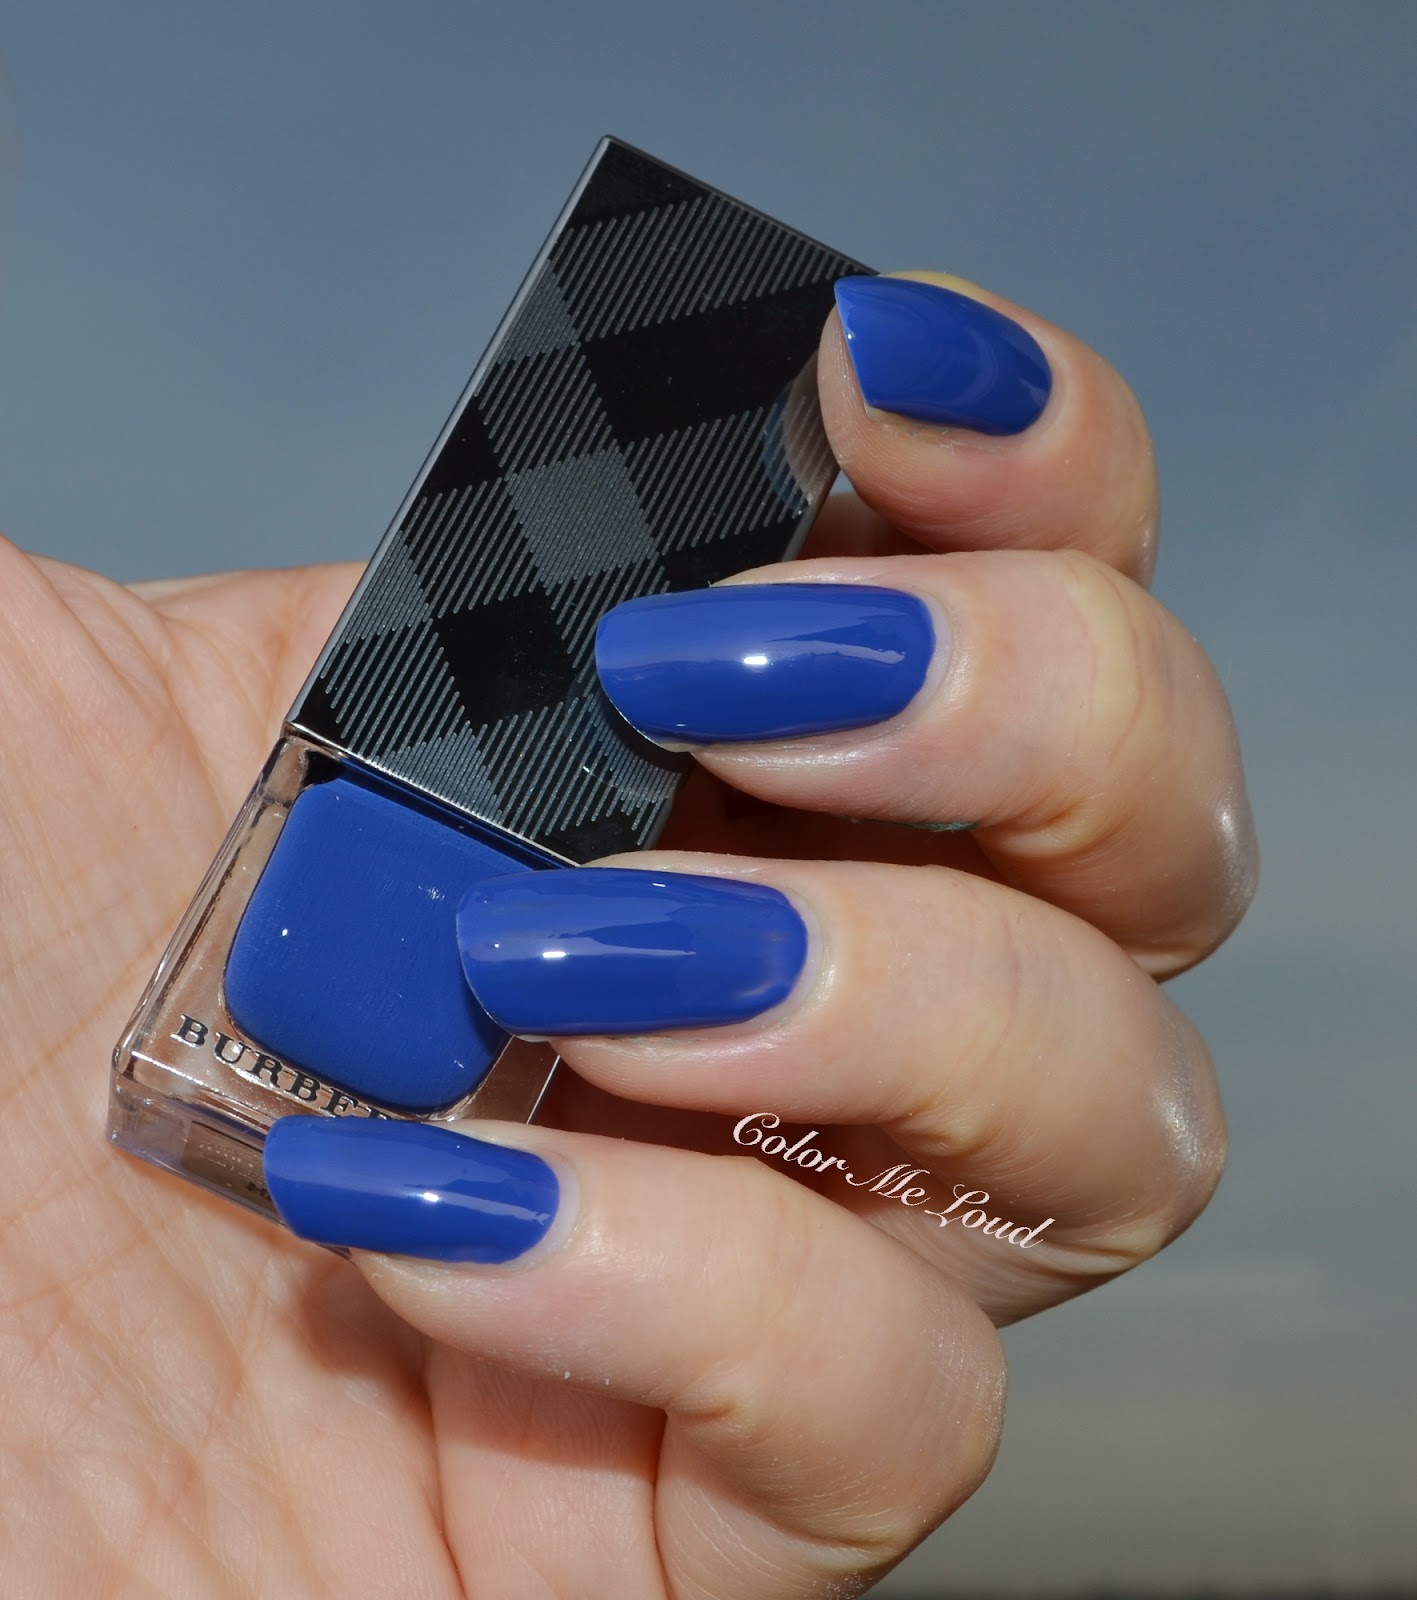 Burberry Nail Polish #429 Imperial Blue